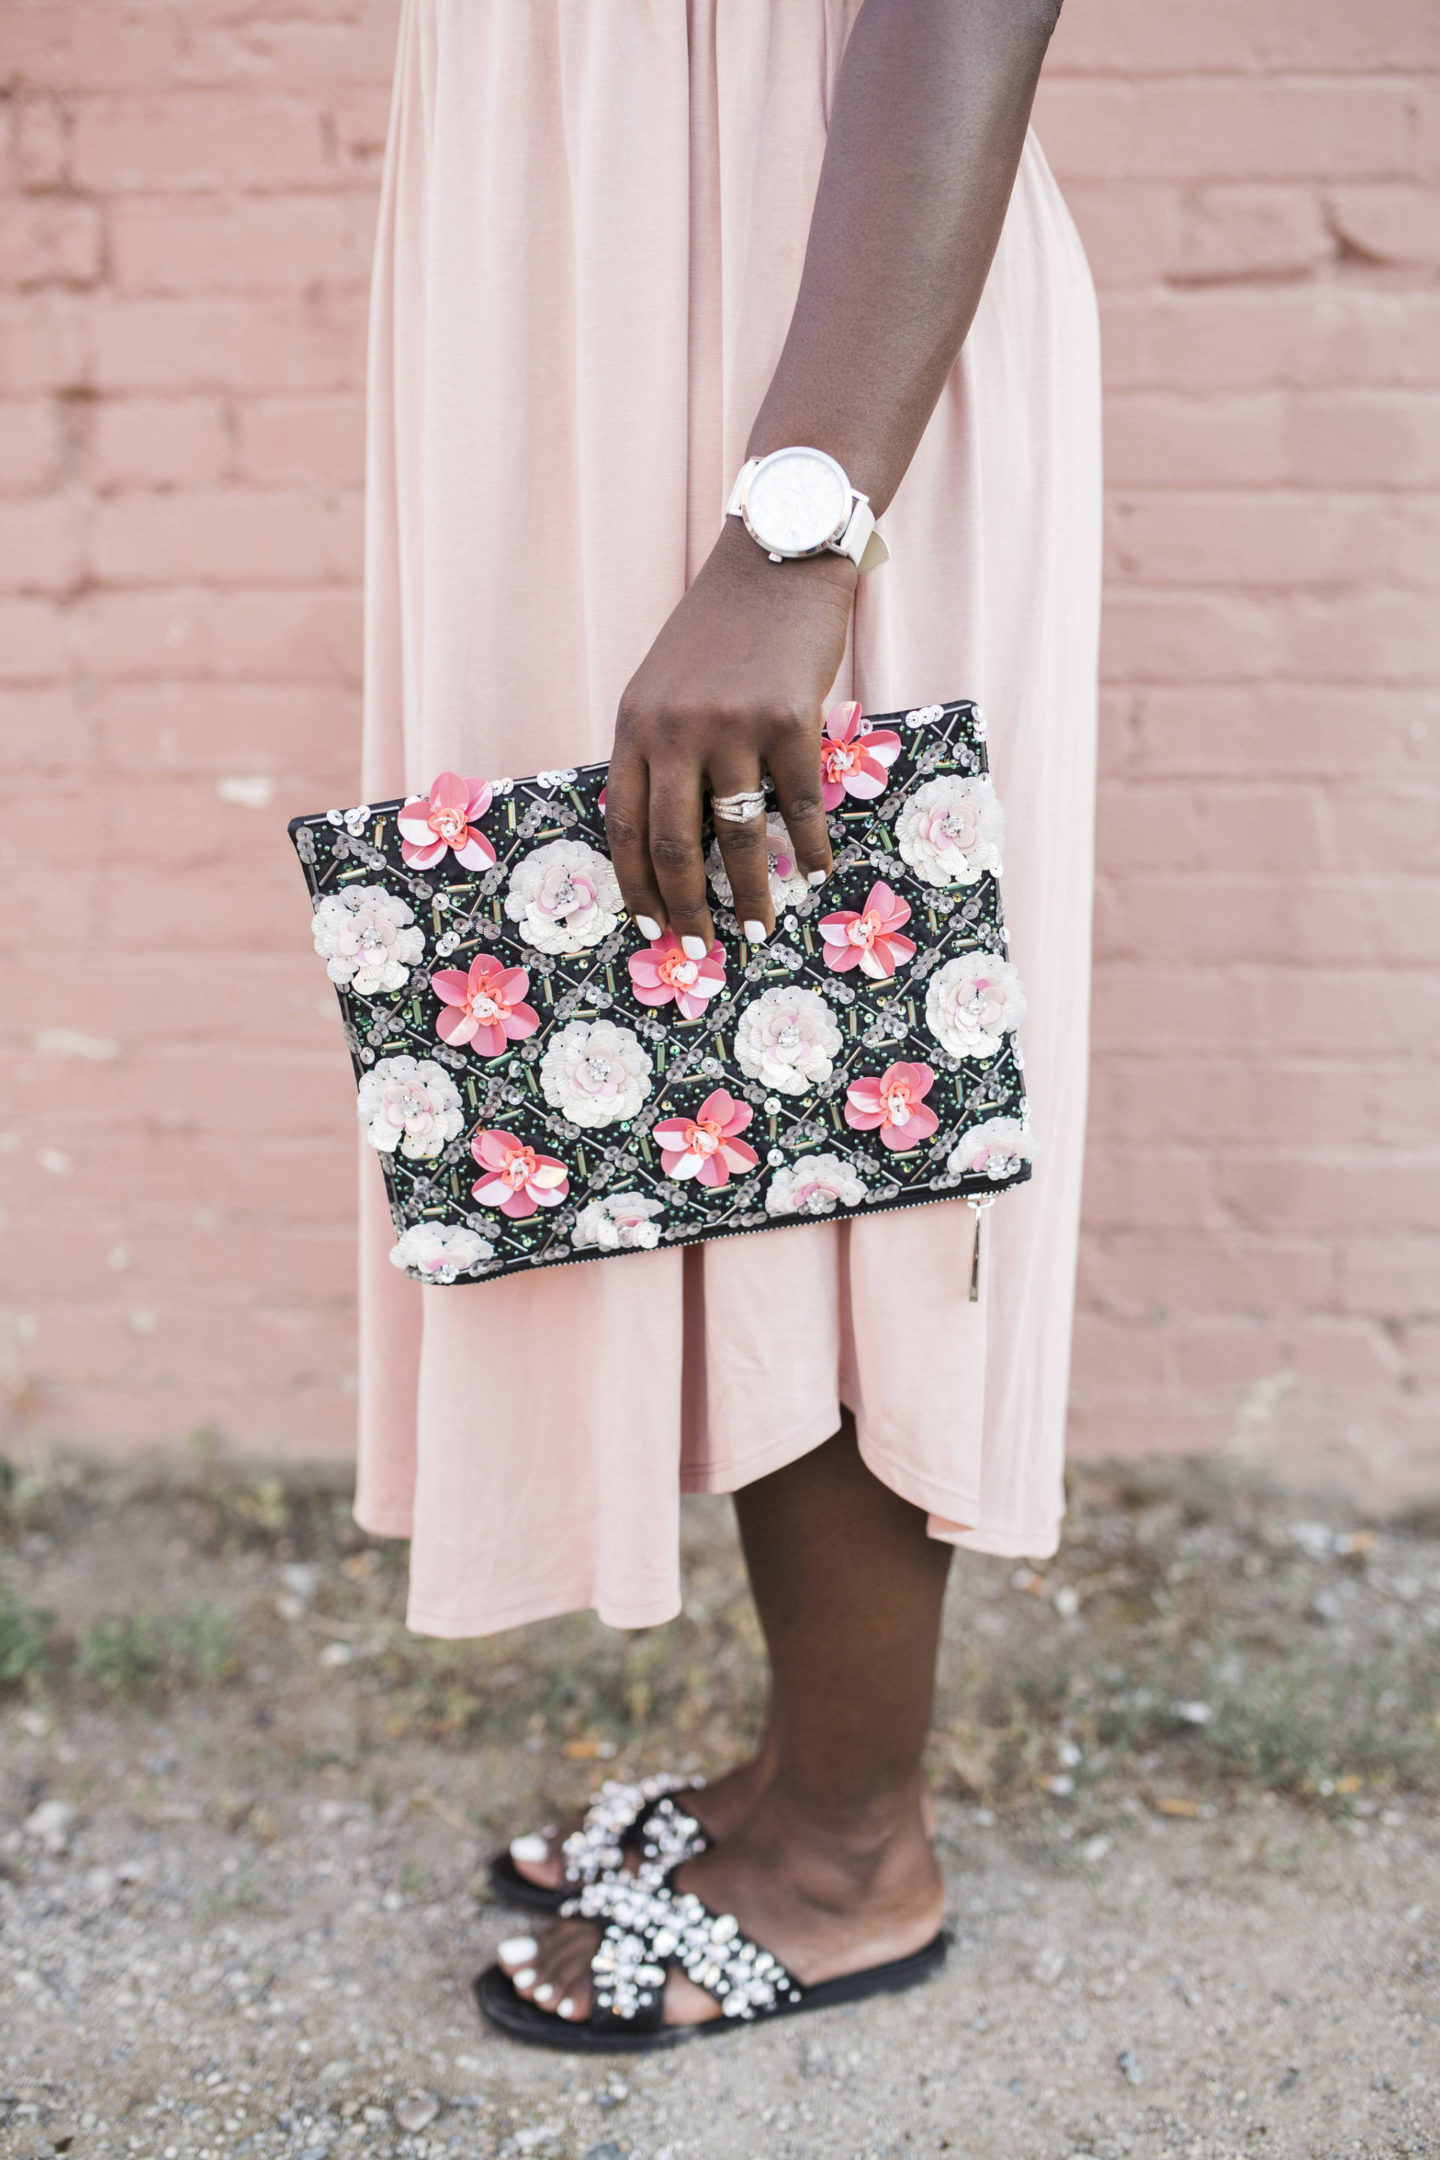 Pink Ruffle Dress + Accessories Needed To Elevate Your Summer Wardrobe On A Budget!